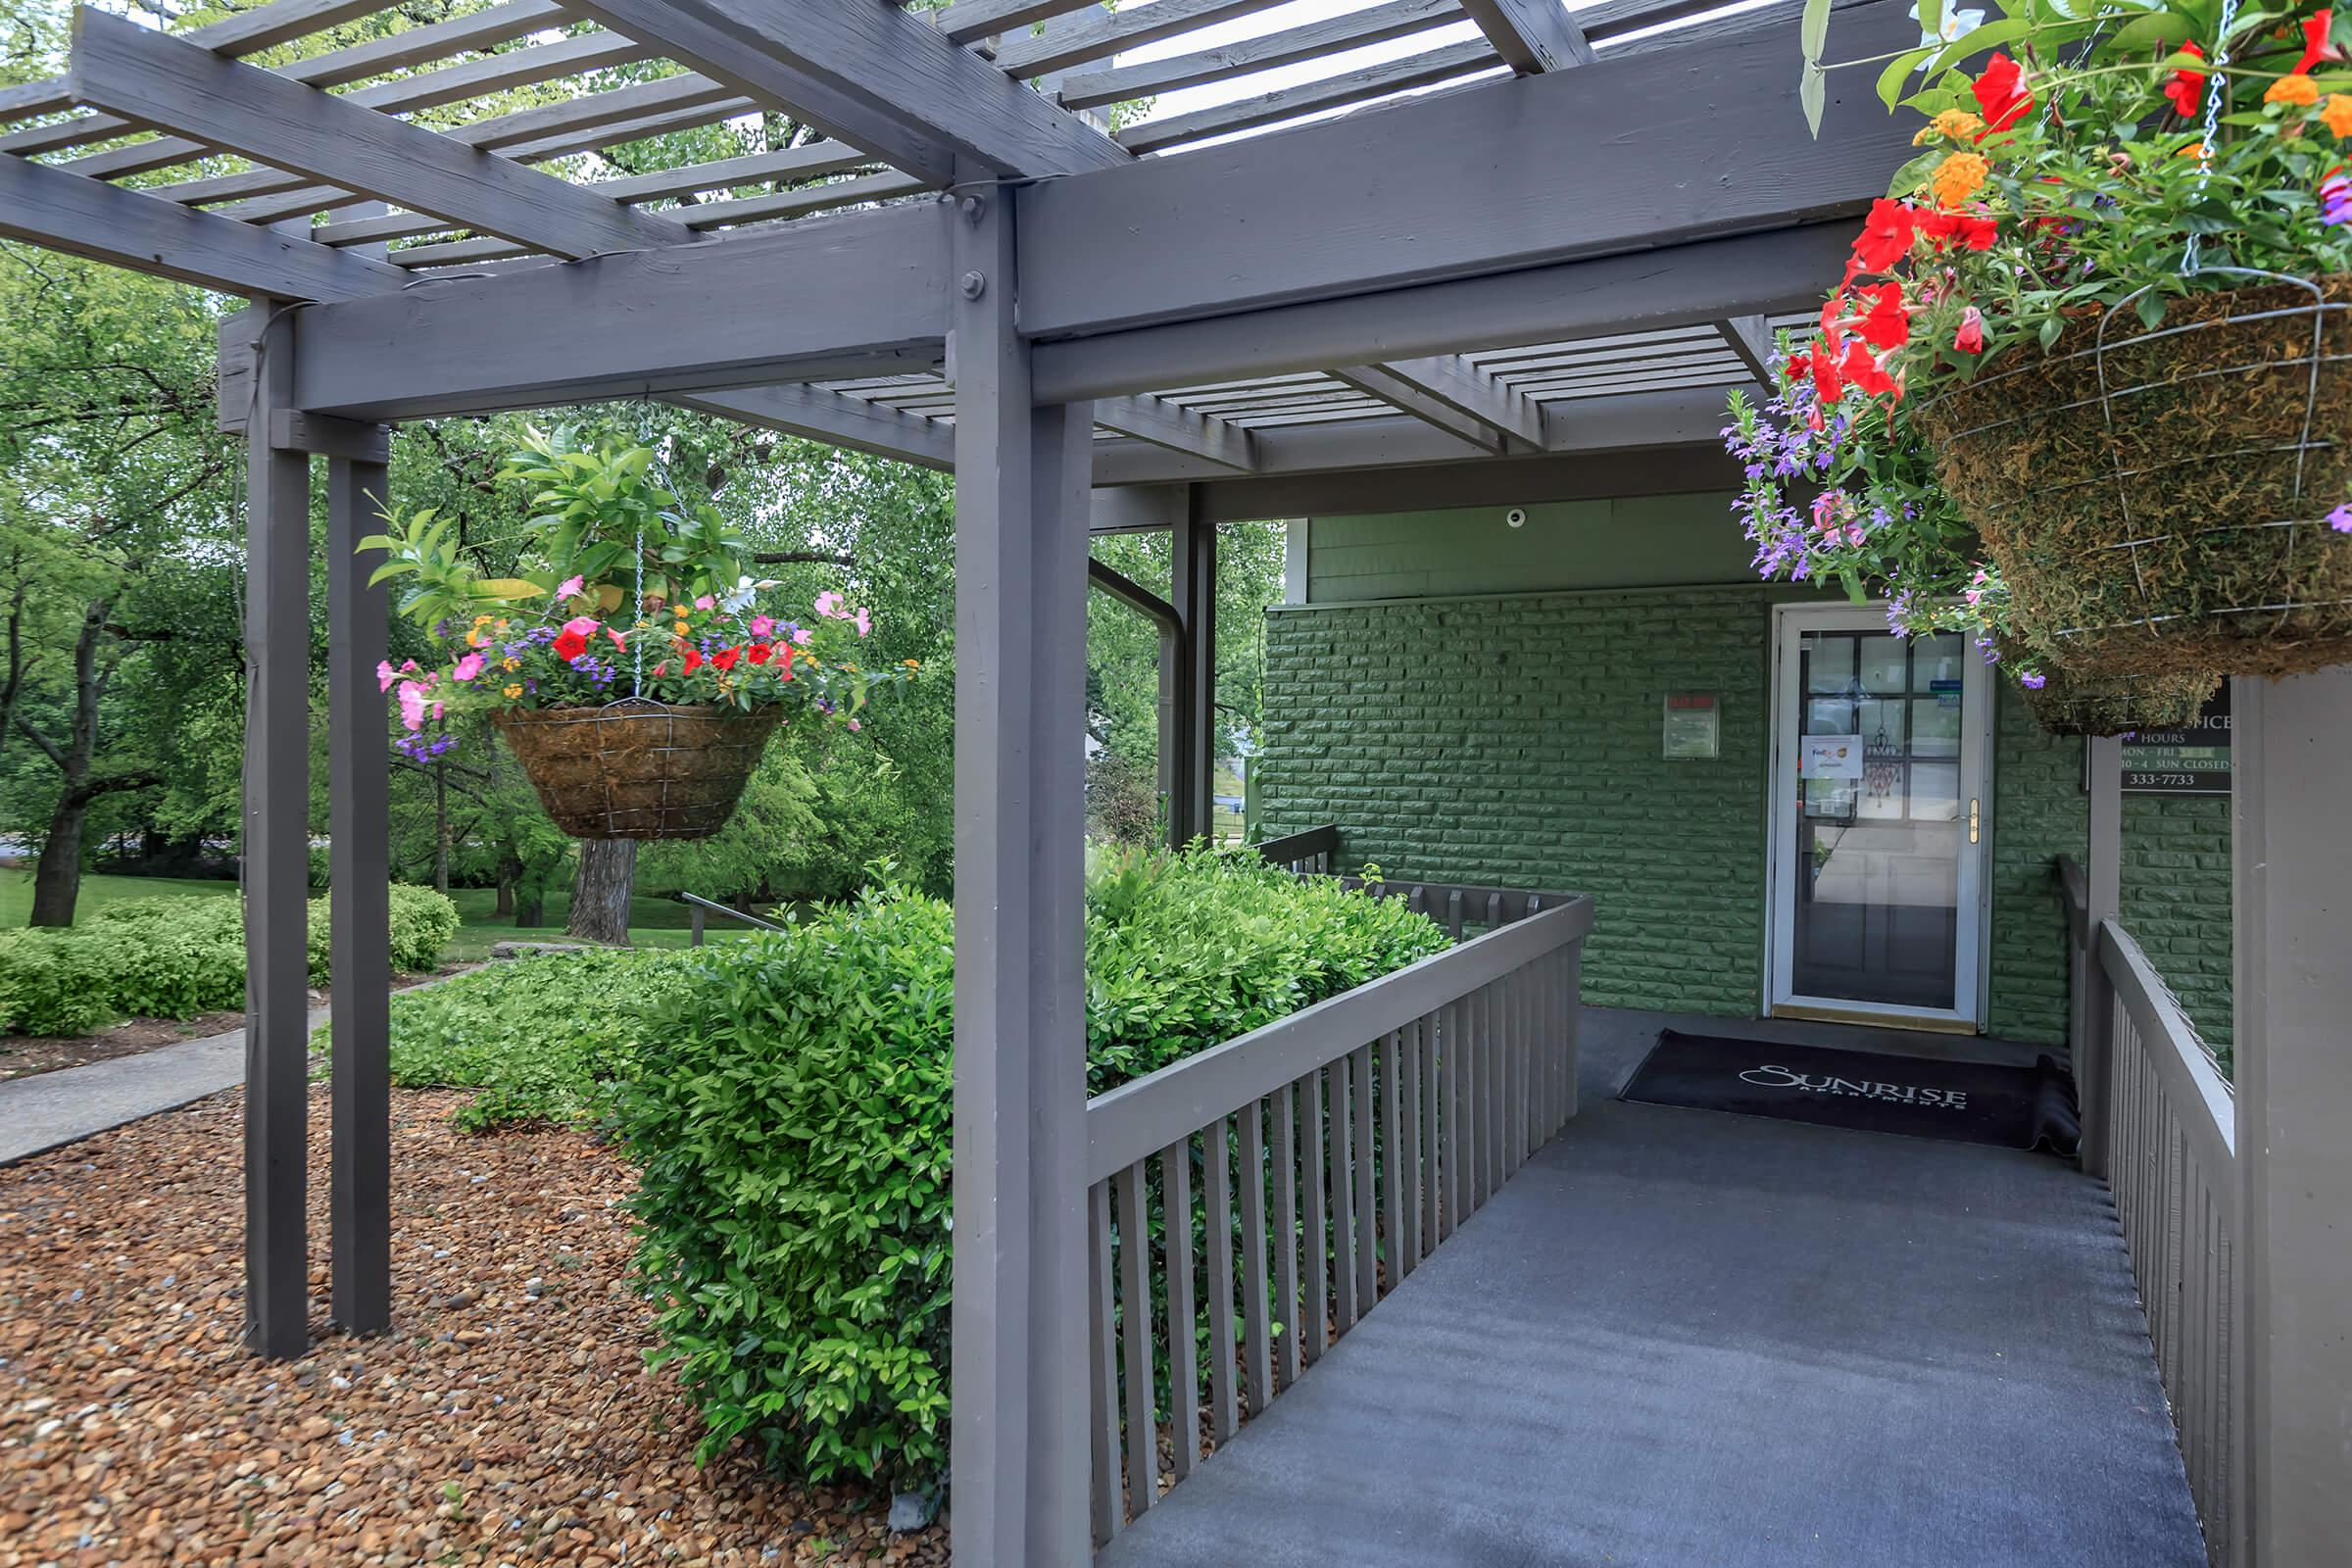 gorgeous landscaping at Sunrise Apartments in Nashville, Tennessee